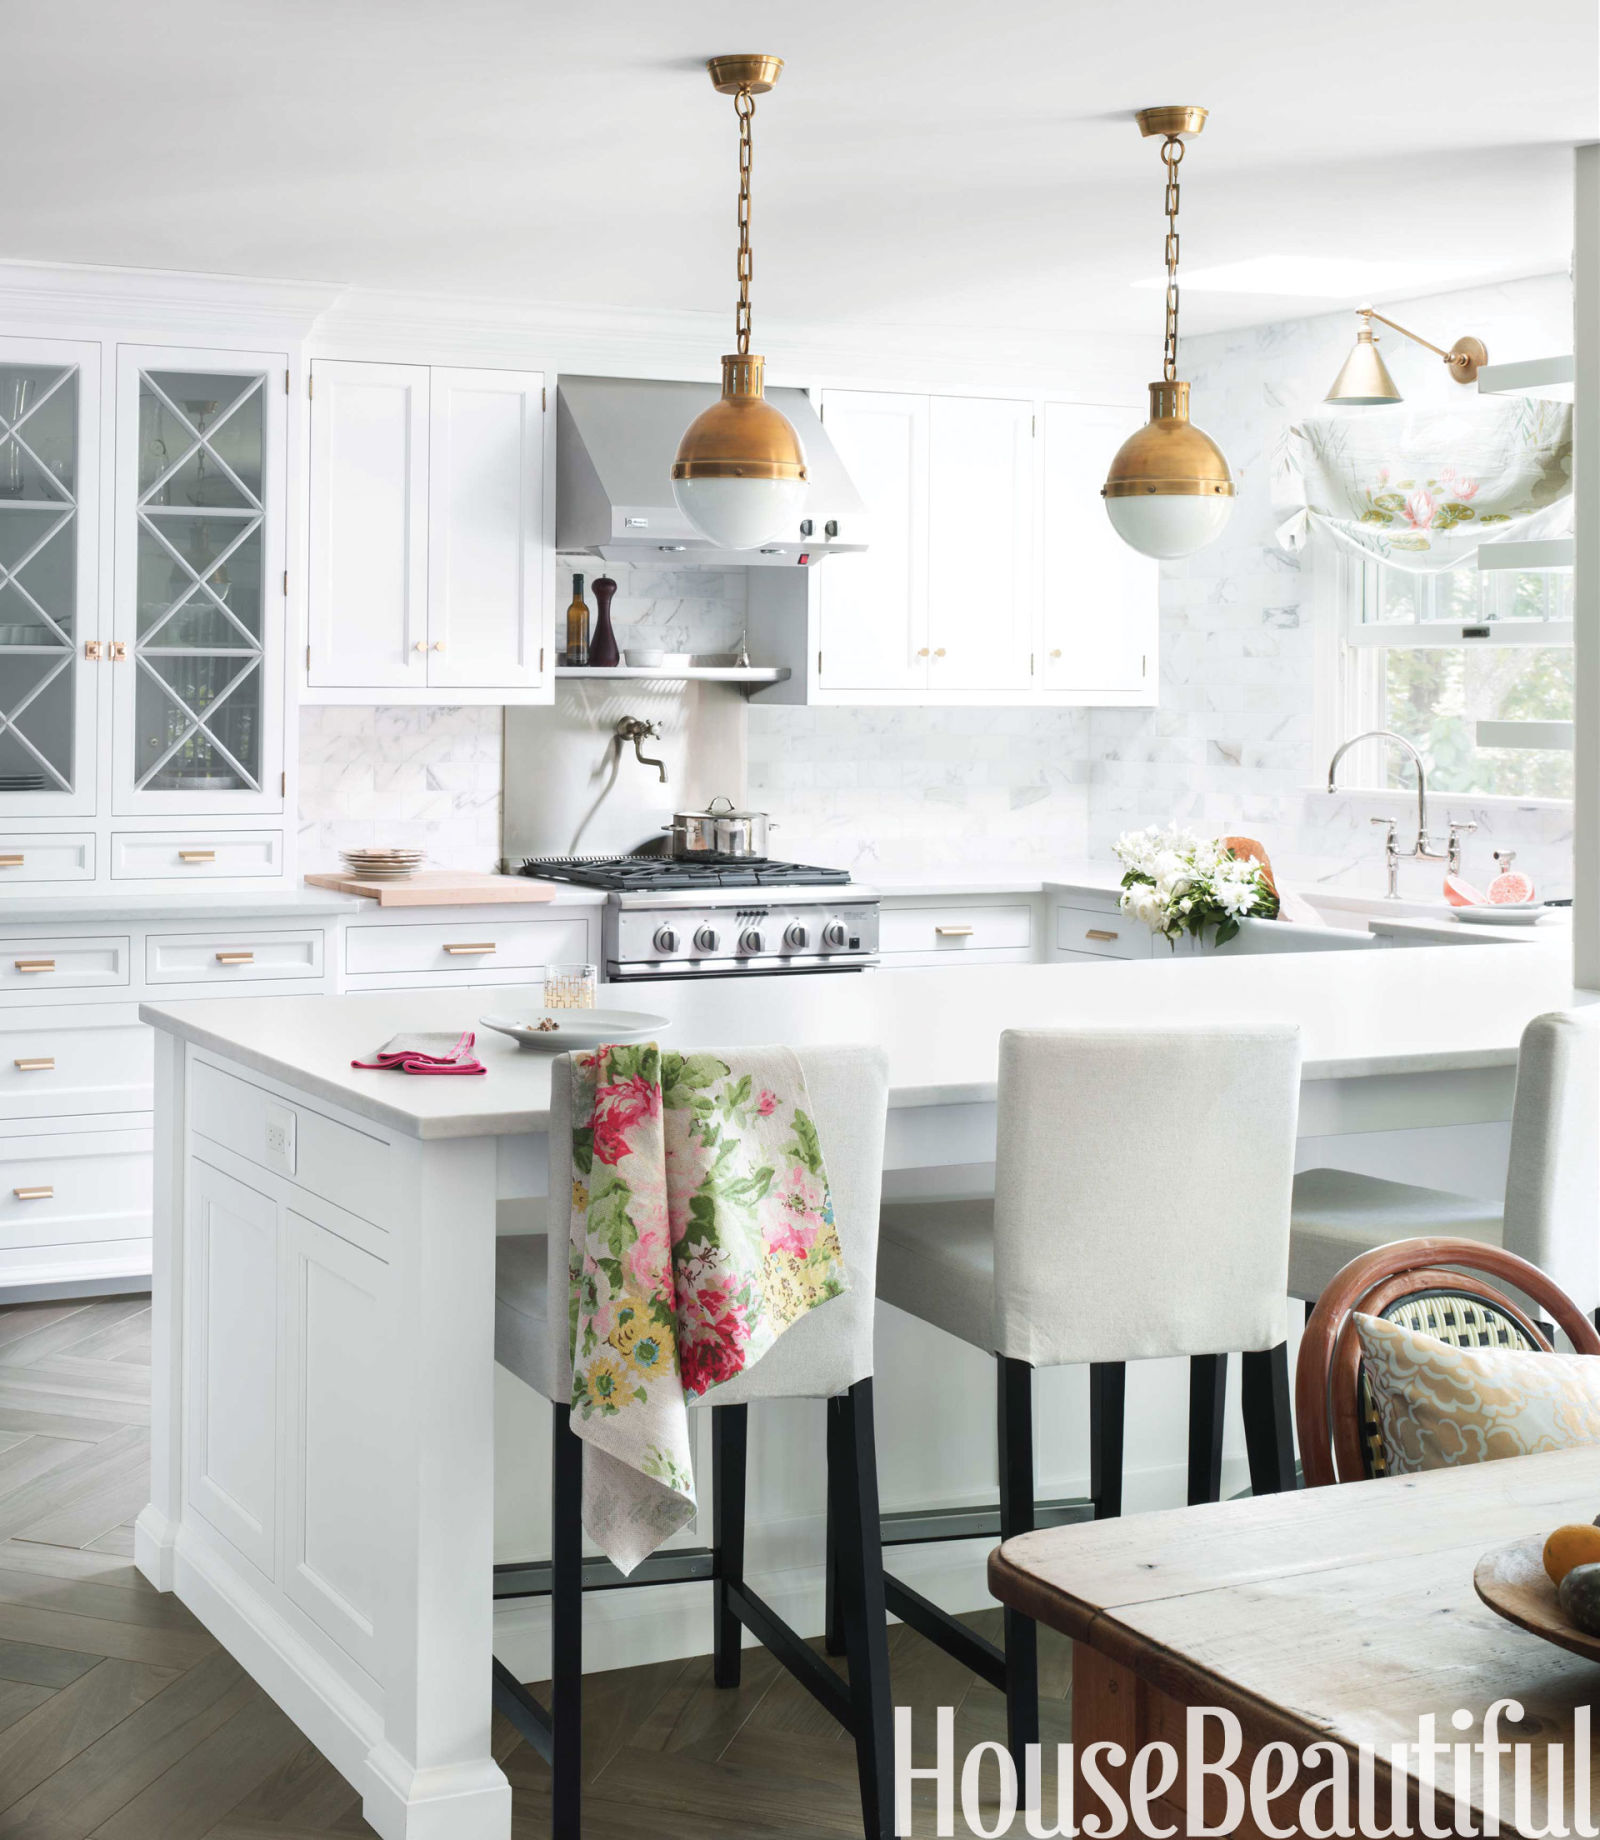 Images Of Beautiful Kitchens best kitchens of 2014 - 2014 kitchen design